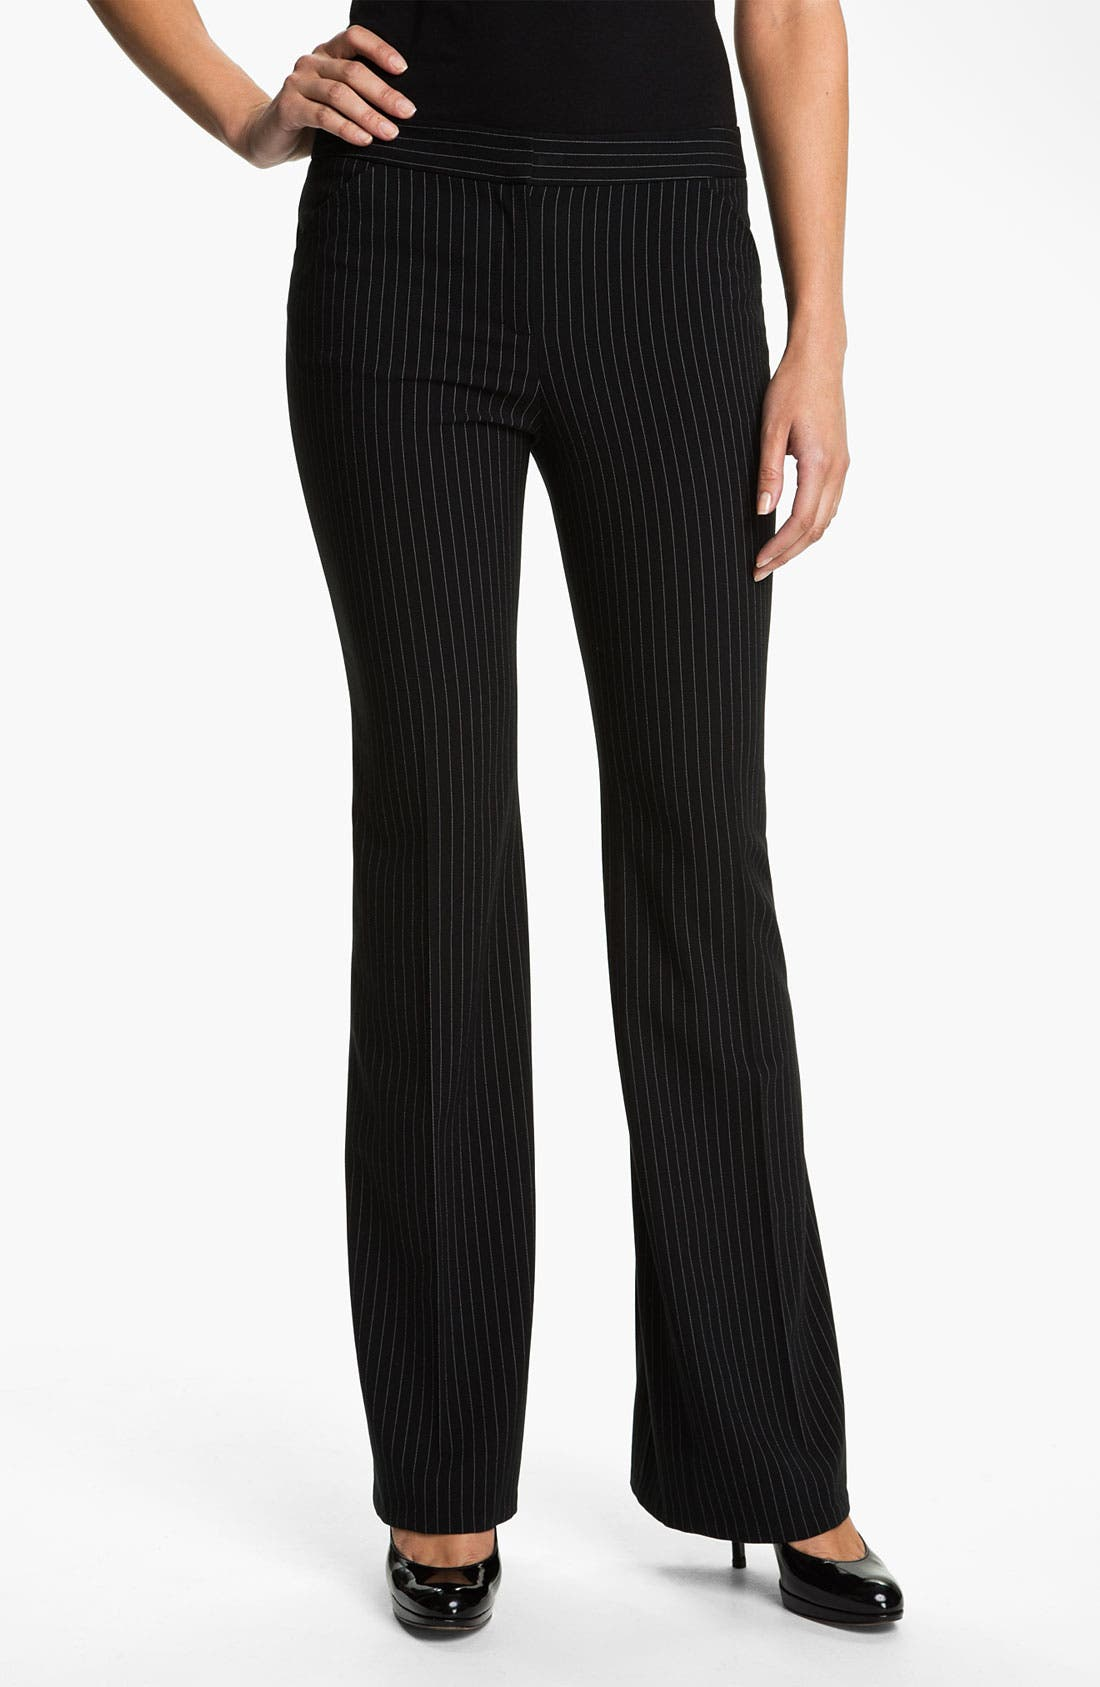 Alternate Image 1 Selected - Anne Klein Pinstripe Wide Leg Pants (Petite)